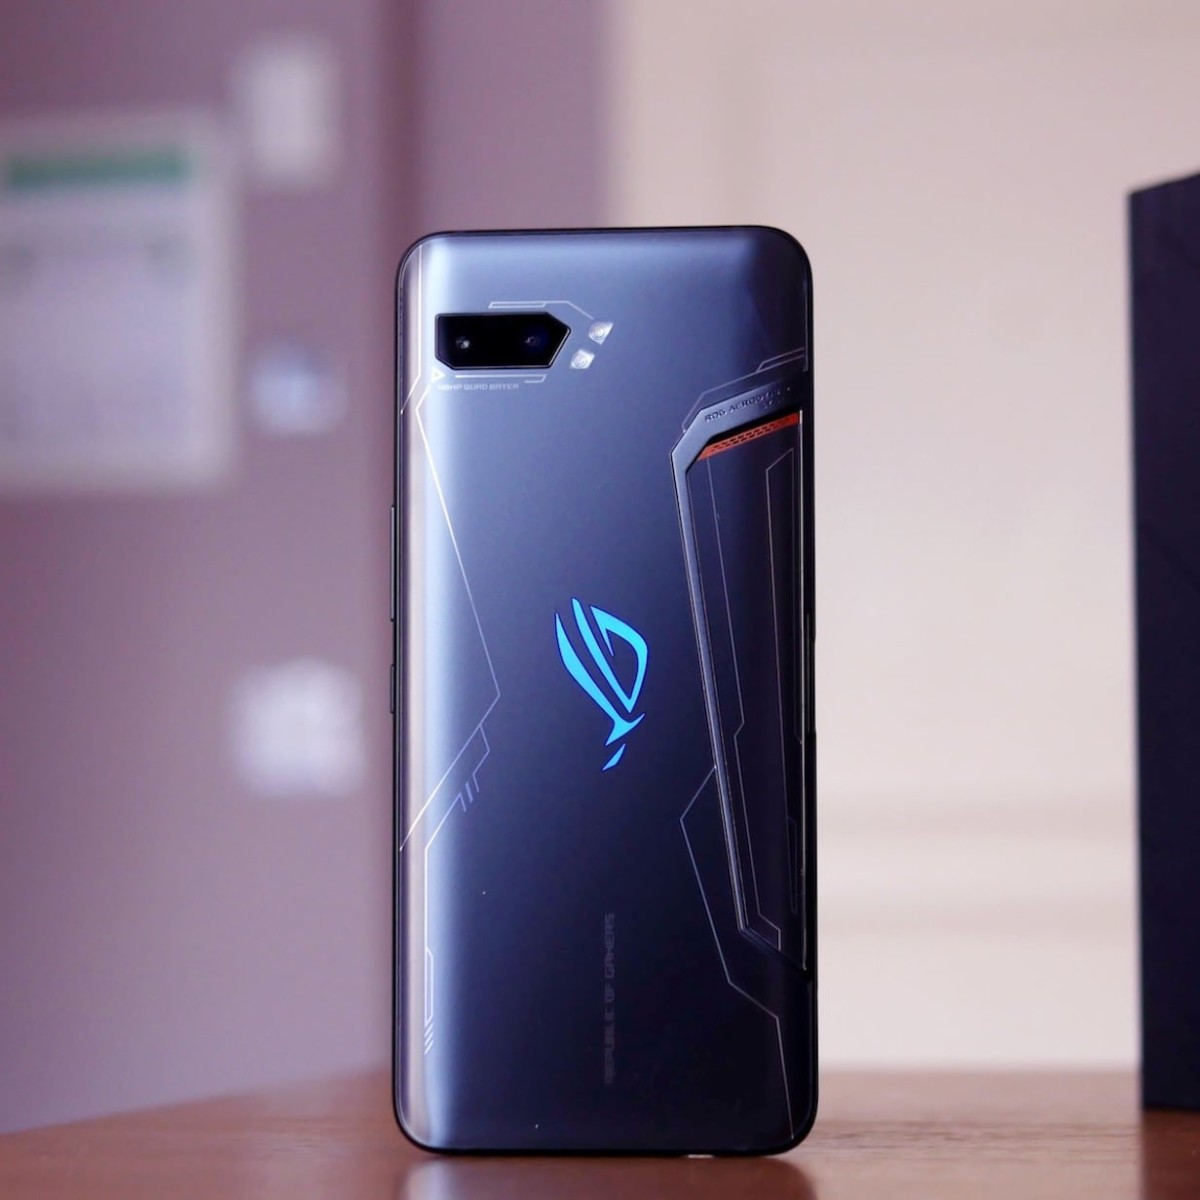 ASUS ROG Phone 2 Ultimate Edition Smartphone includes 1 TB of storage